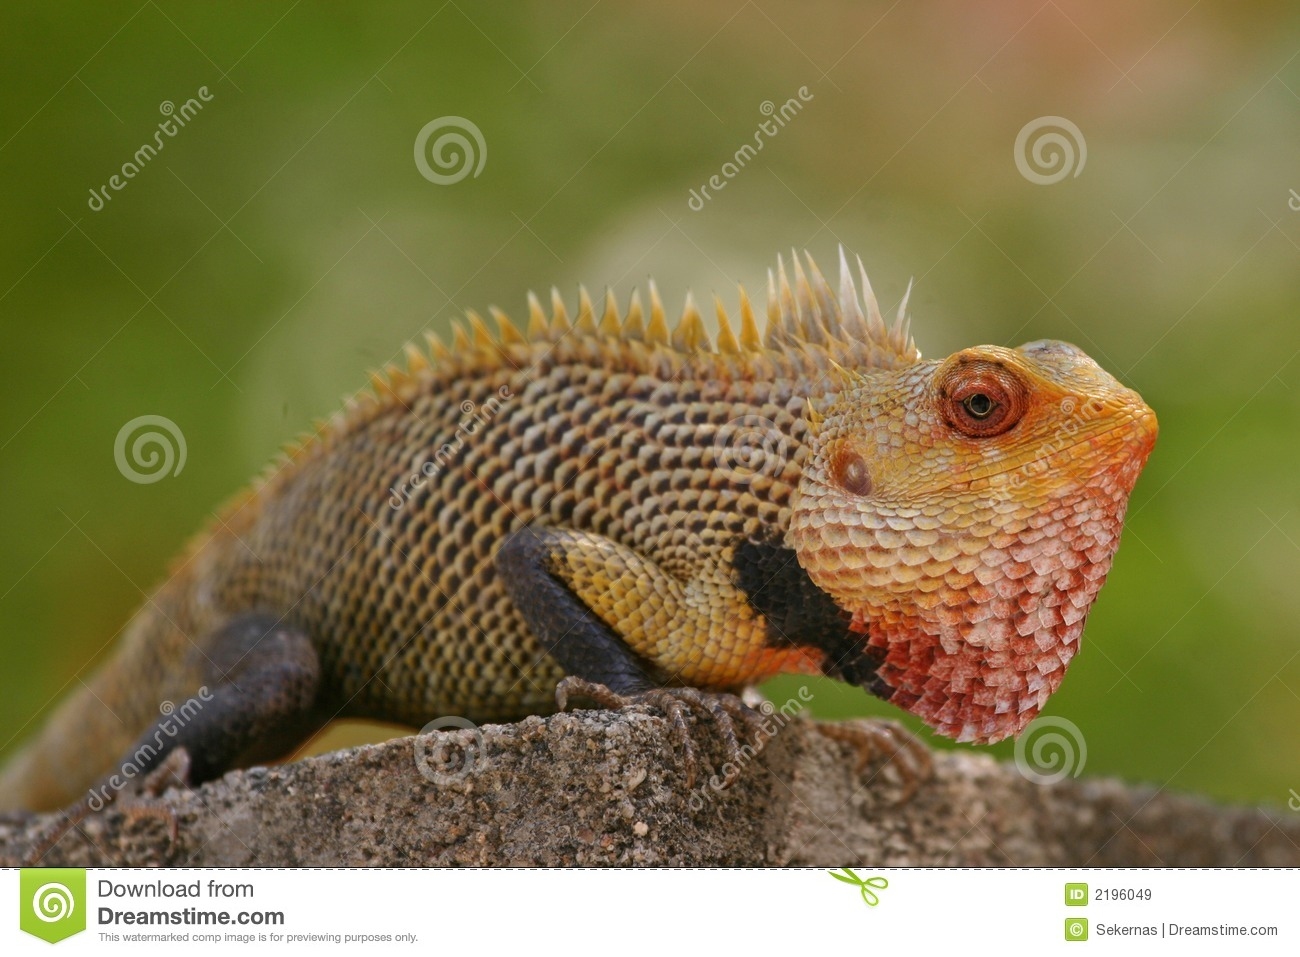 Indian garden lizard stock image. Image of animal, dragons - 2196049